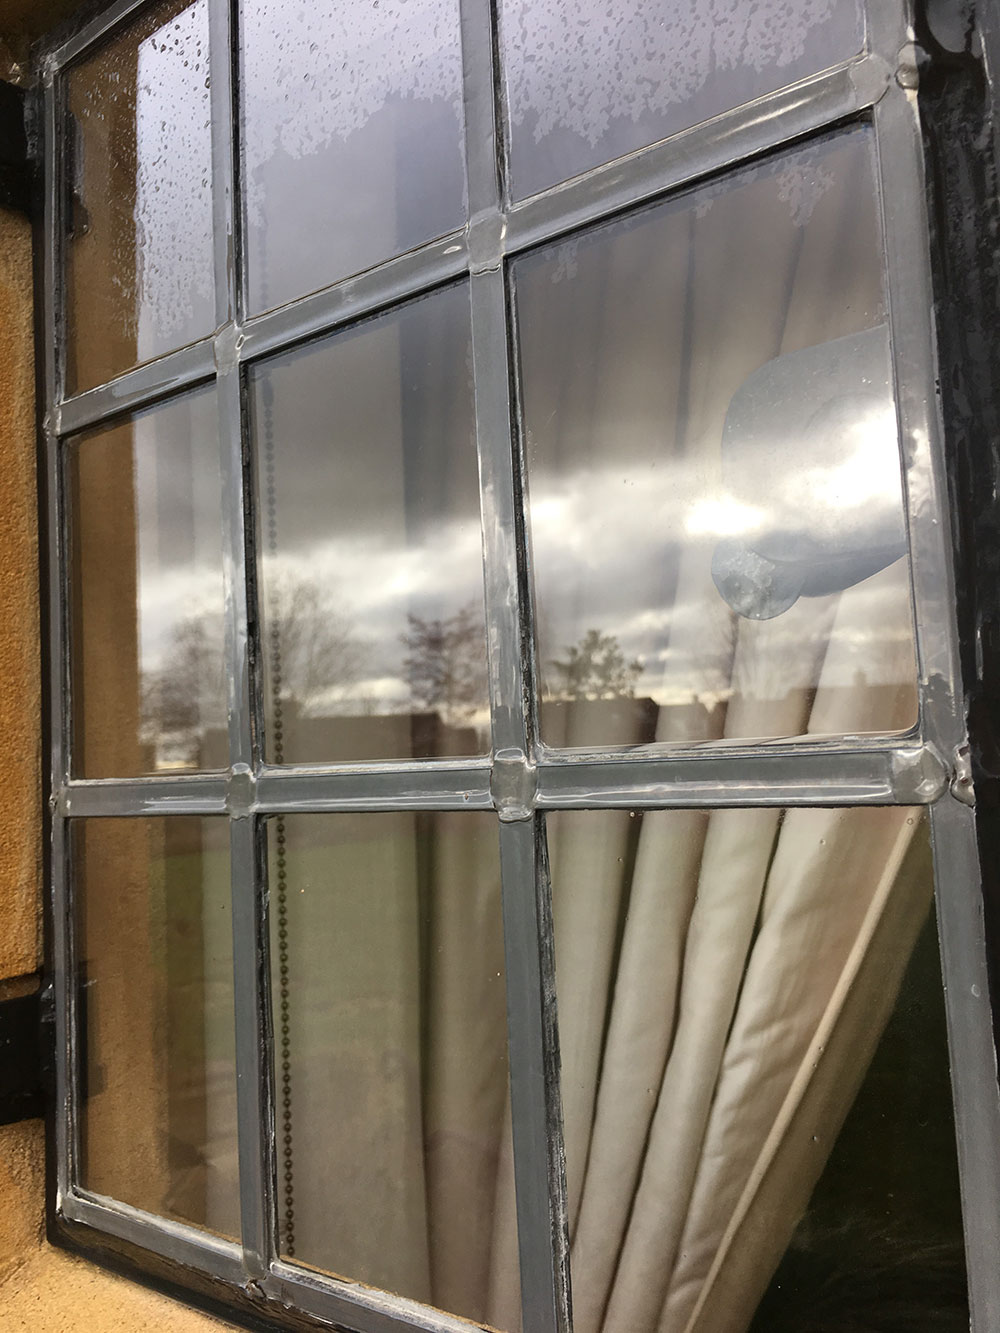 leaded-window-cleaning-close-up.jpg